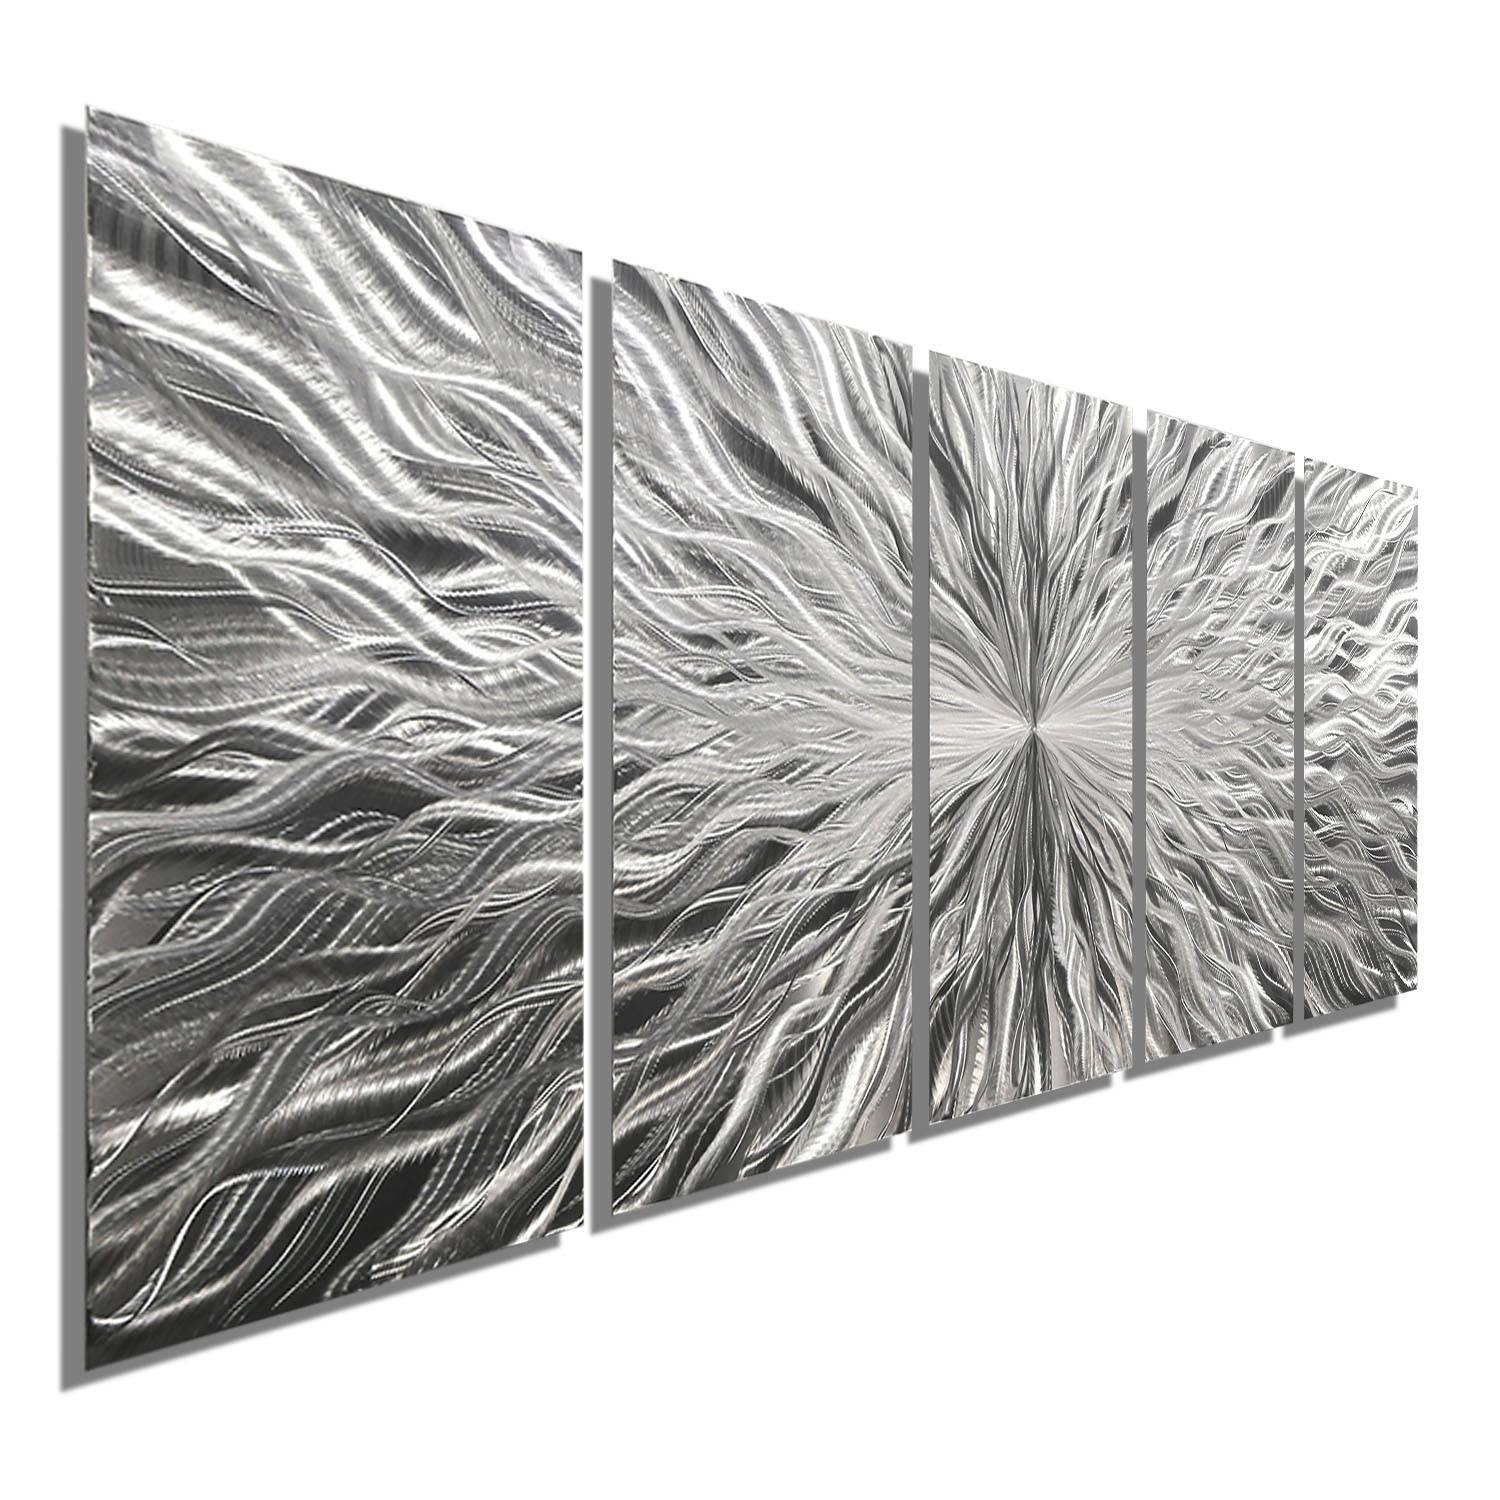 Vortex 5 – Five Panel Silver Modern Abstract Metal Wall Artjon With Most Recent White Metal Wall Art (View 15 of 20)